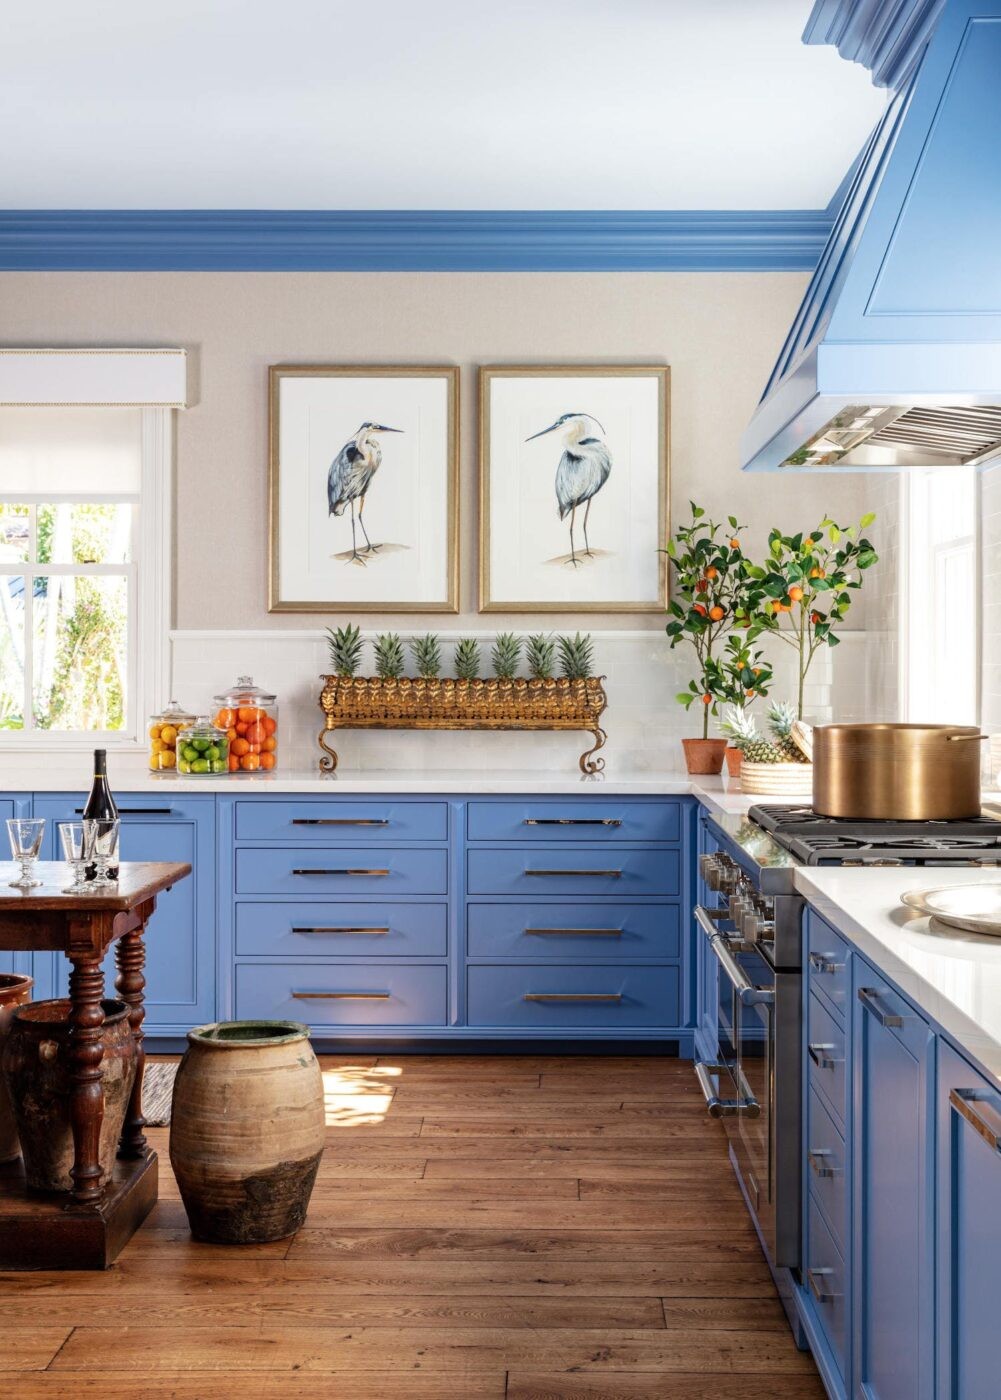 Seven ideas to refresh your kitchen